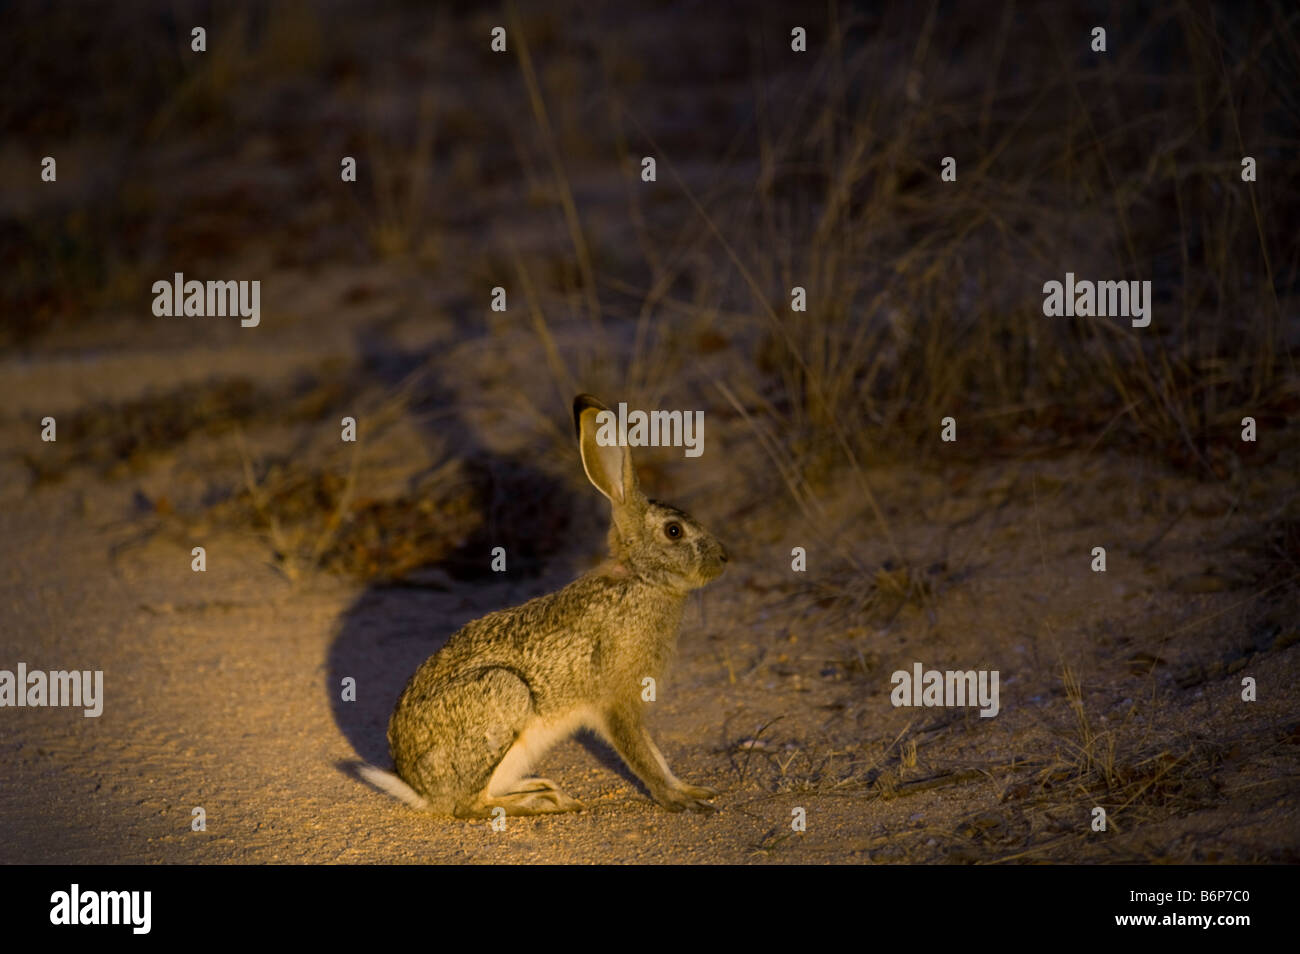 wild SCRUB HARE Lepes saxatilis at night roadside nocturnal animal south-Afrika desert south africa crossing road - Stock Image